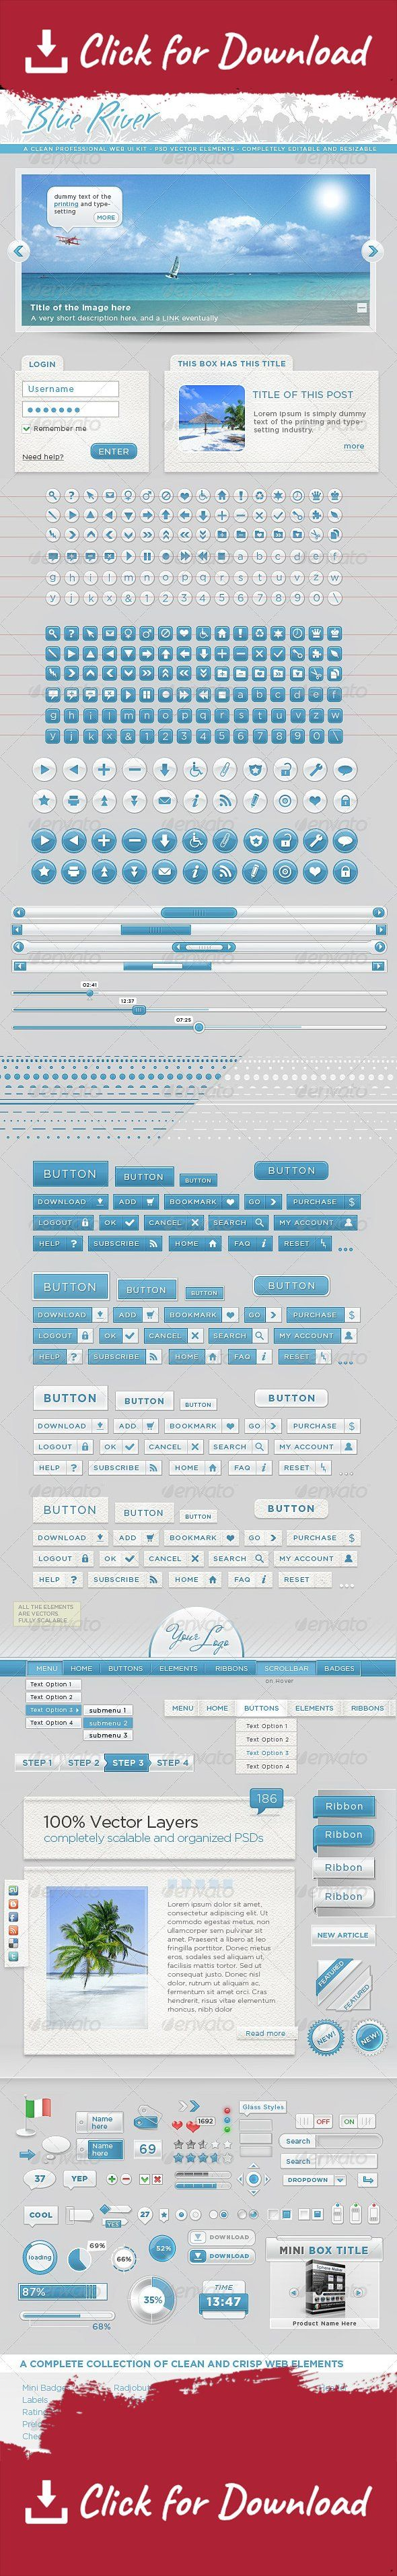 badges, banners, blue, boxes, clean, collection, corner ribbons, crisp, digital, dividers, forms, interface, labels, mini web elements, minimal, modern, navigation bars, paper, radiobuttons, ribbons, sleek, sliders, tables, tooltip, web 2.0, web shadow box, white One of the most complete Professional Graphic User Interface on Graphicriver Web Pack – Kit of graphics Elements – Layered Photoshop CS Psd This Item contains more than 3500 sleek and clean web elements, incredibily useful duri...